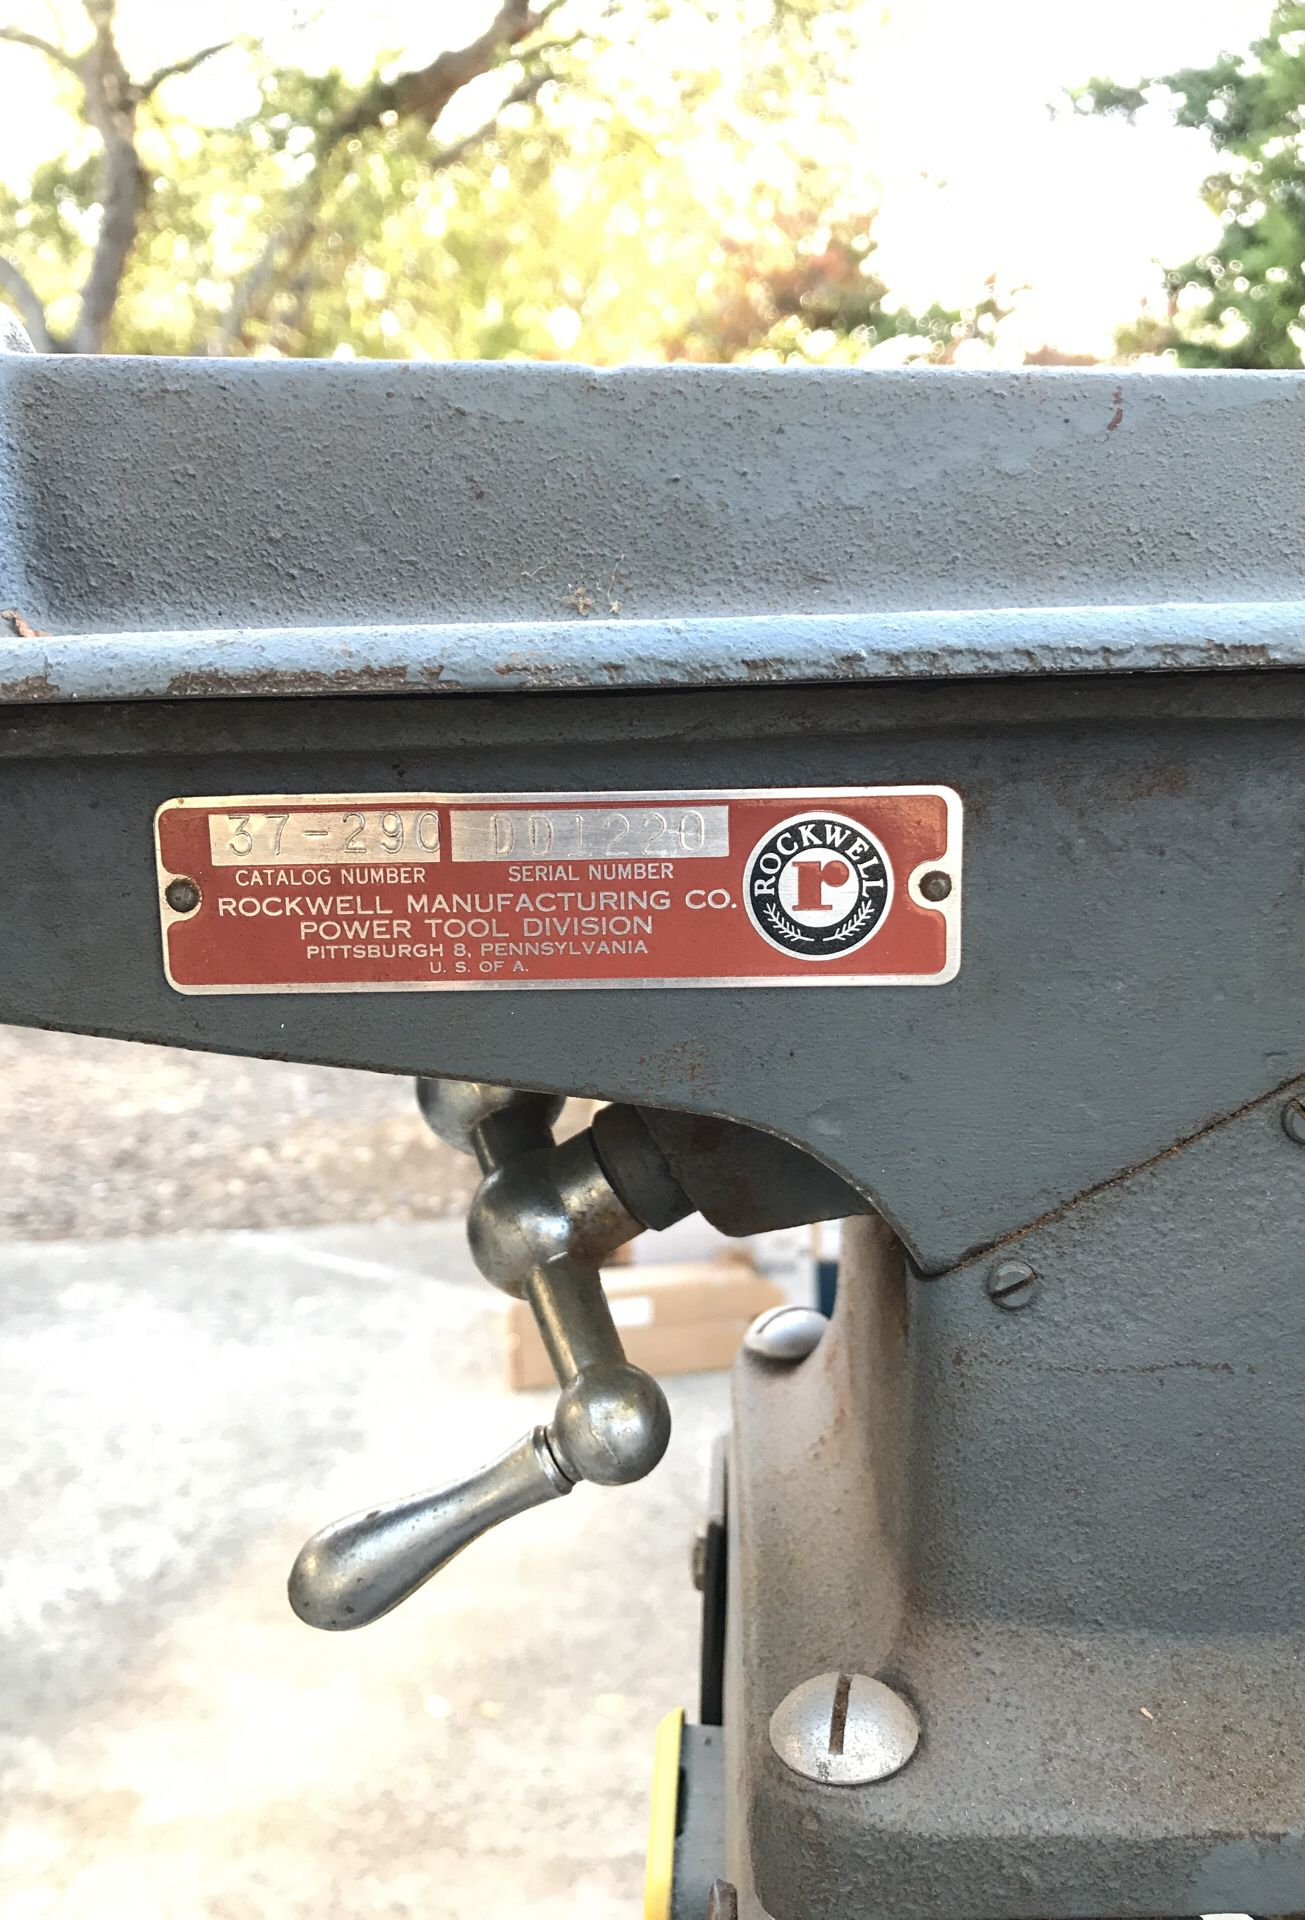 Delta Rockwell jointer with 1/2 hp electric motor